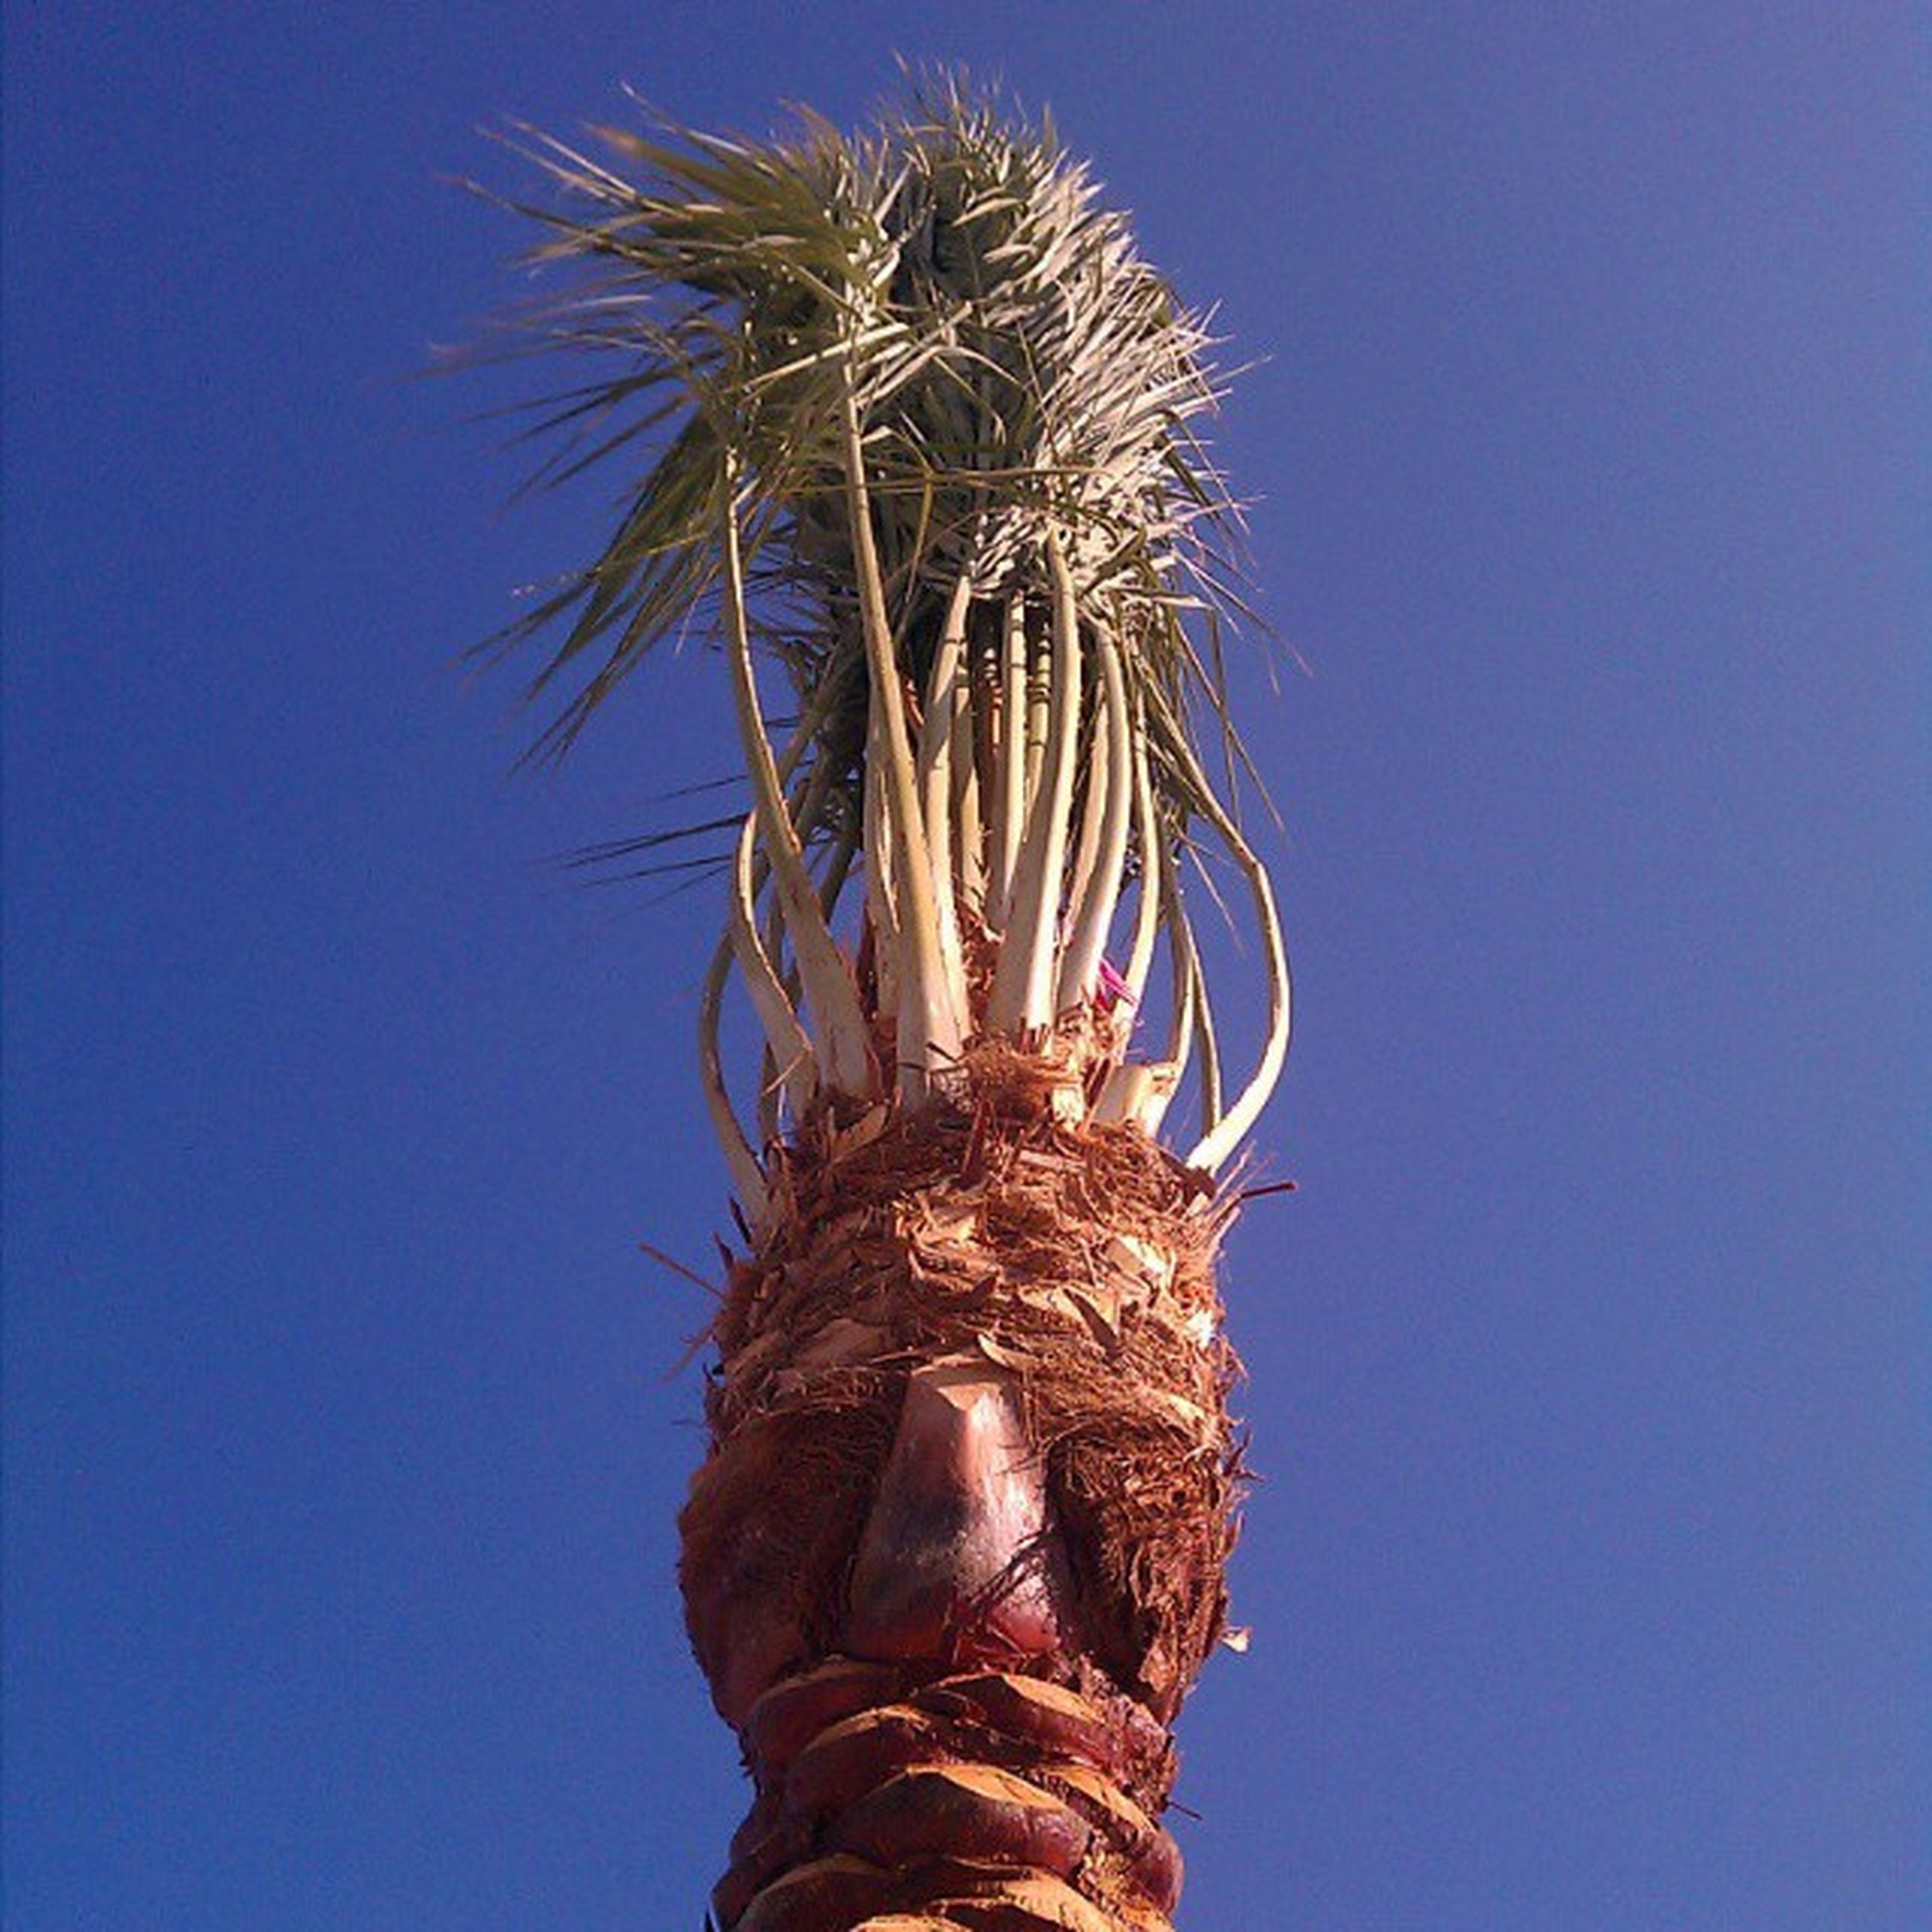 A. really. really. bad. hair.day. 9gag Facesinthings Palmtrees Palmporn POV Nothingisordinary Mydanapoint Badhairday Gmfm_0229